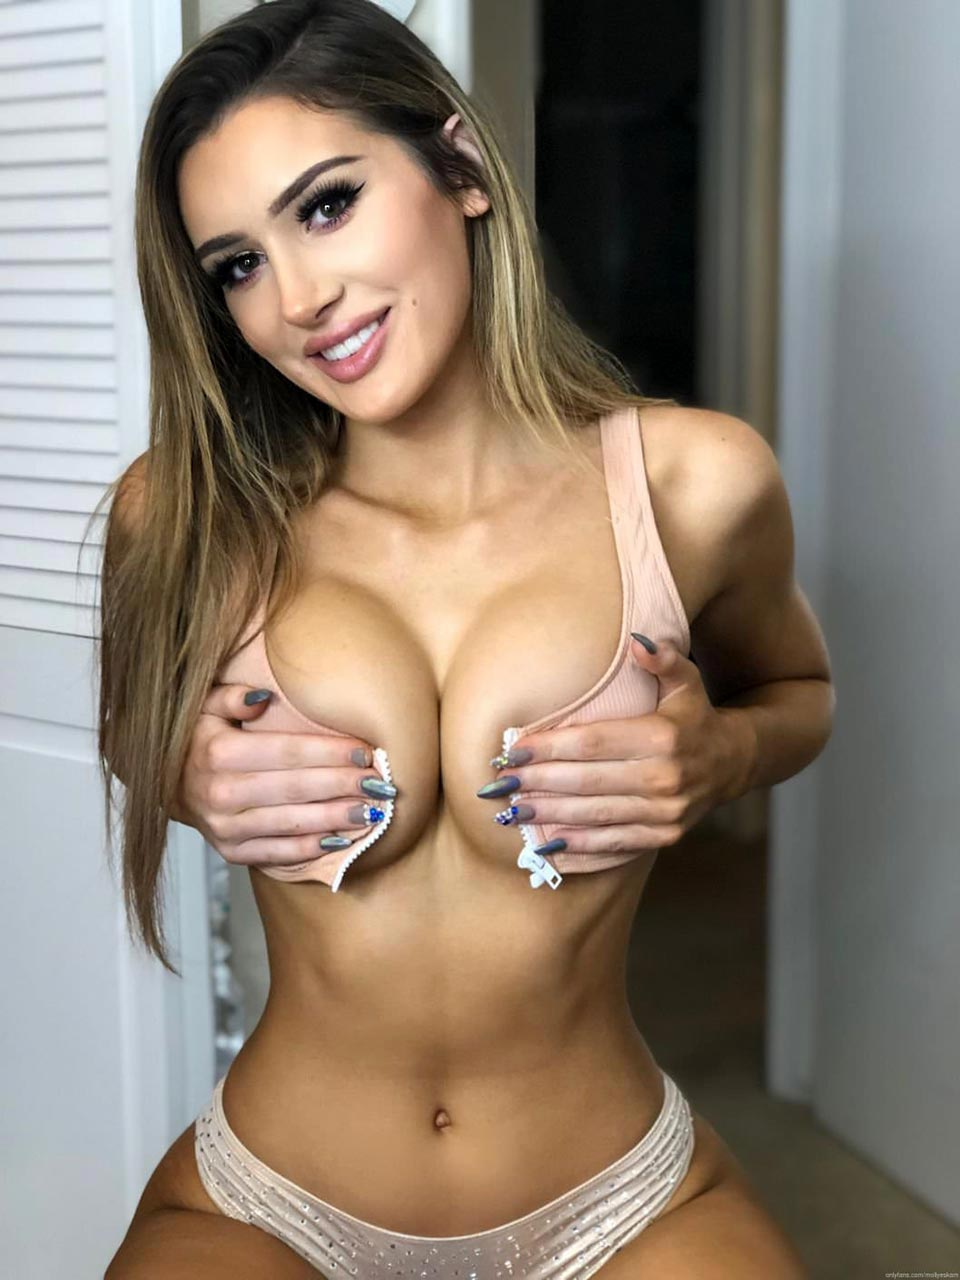 Molly Eskam Nude Leaked Videos and Naked Pics! 105